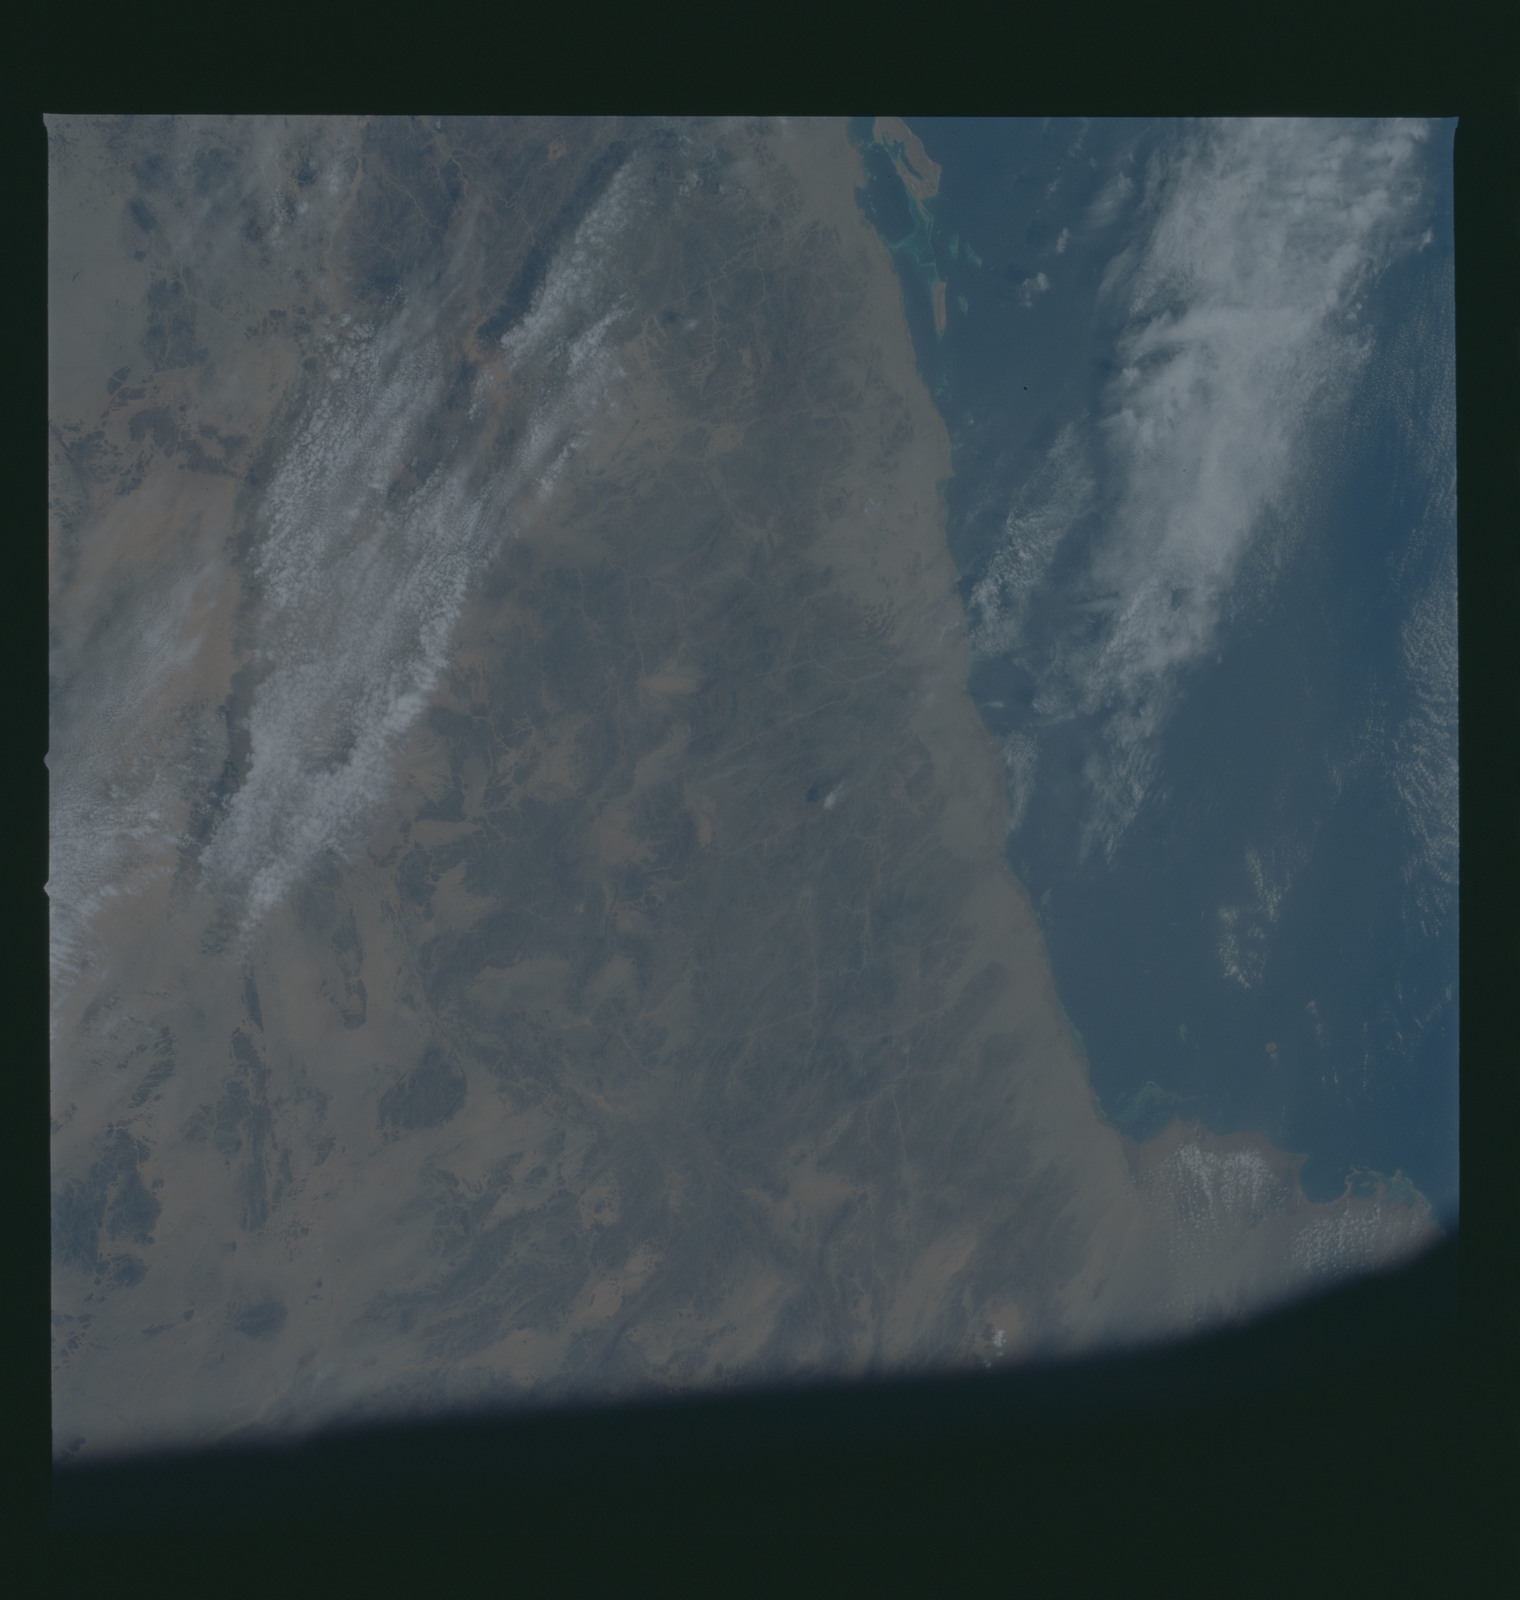 S37-94-078 - STS-037 - Earth observations taken from OV-104 during STS-37 mission